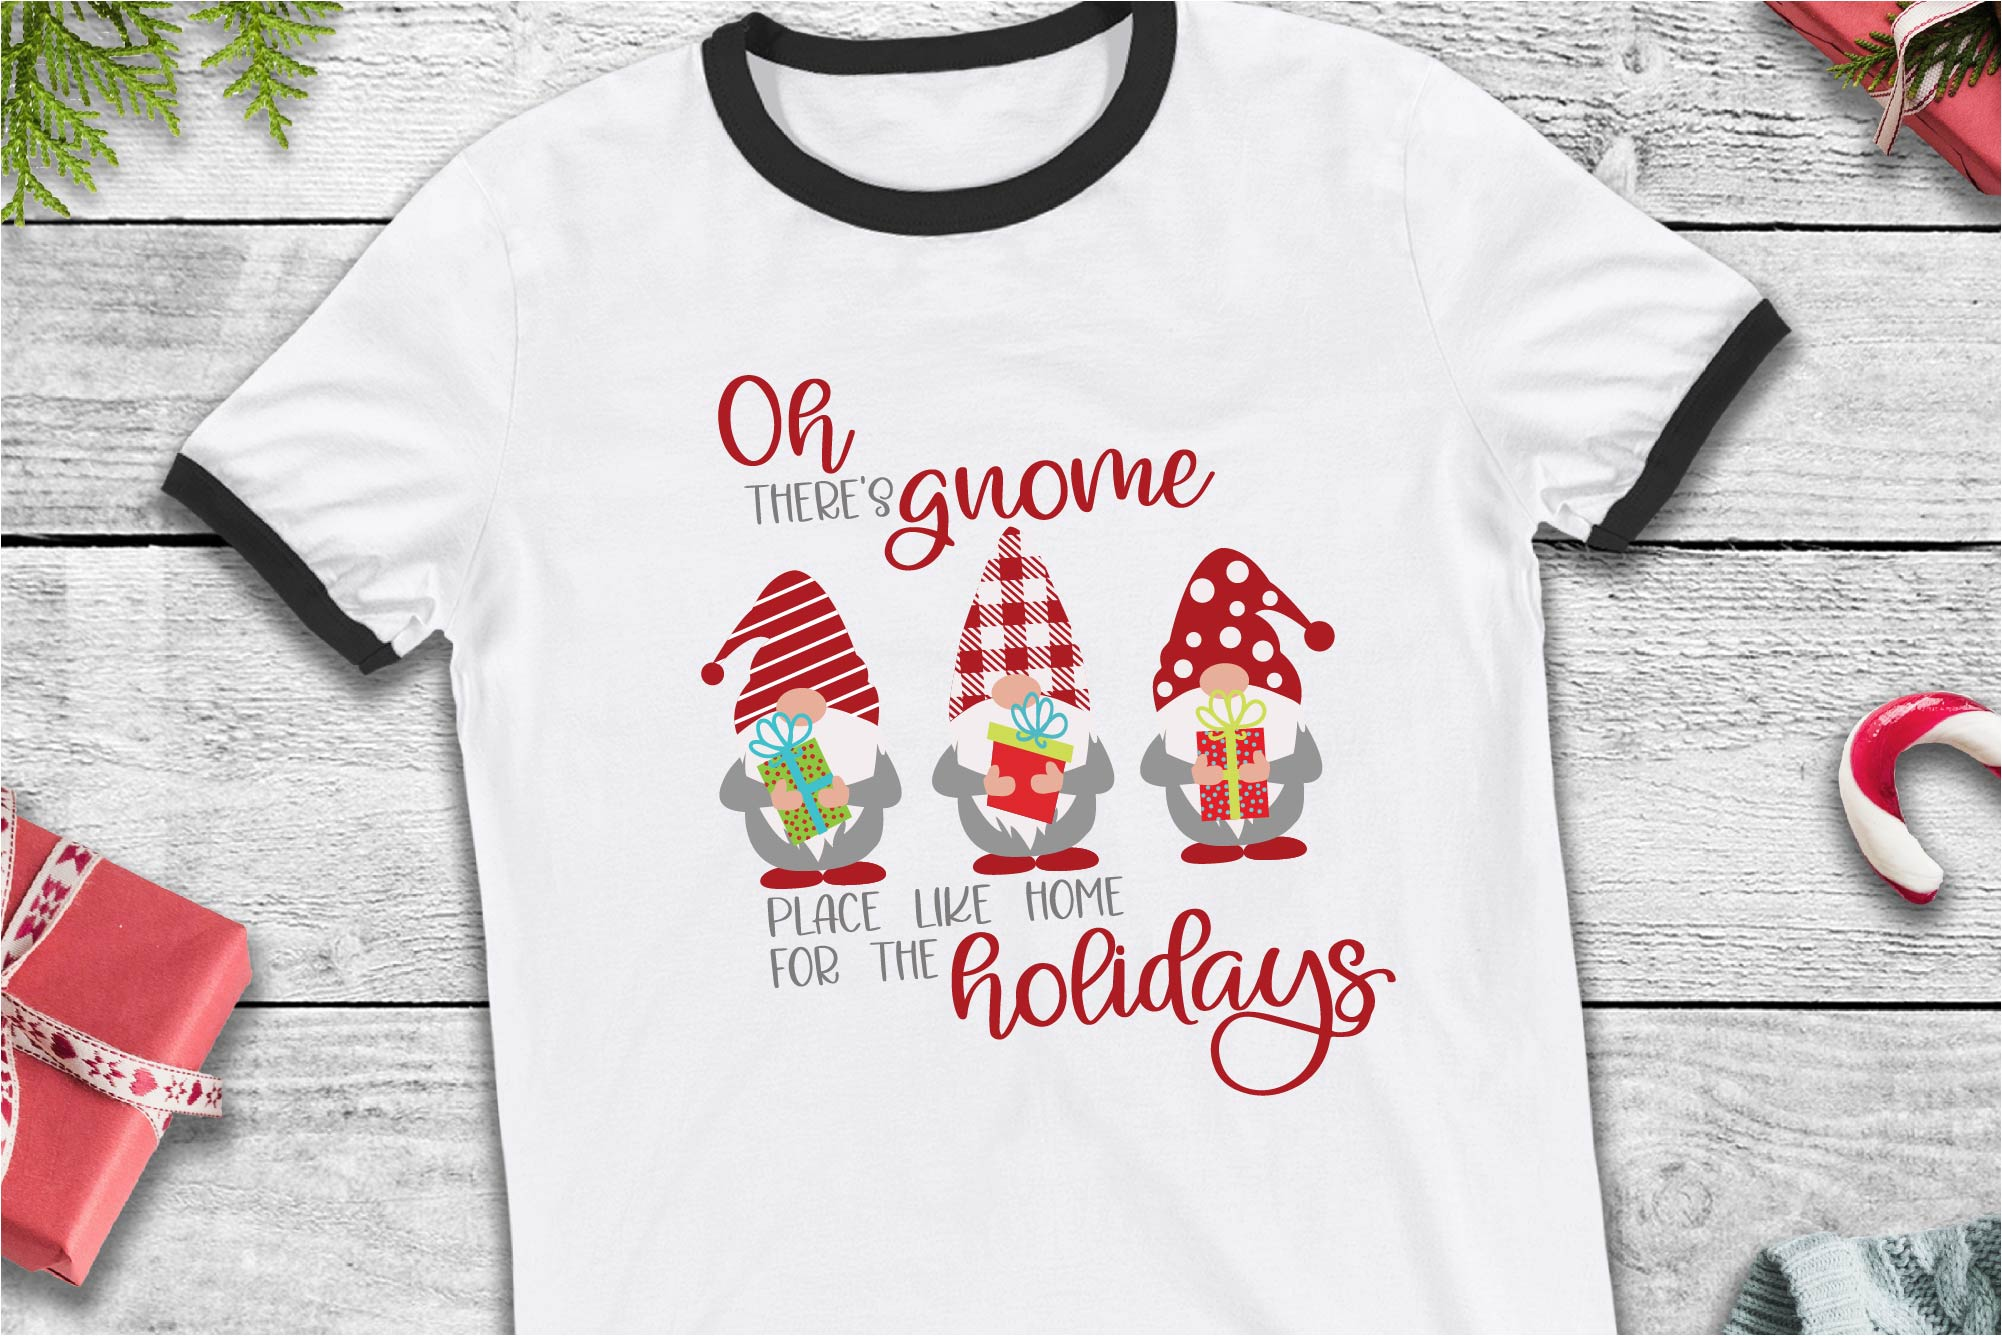 Home For The Holidays SVG, Gnome Place Like Home SVG example image 1